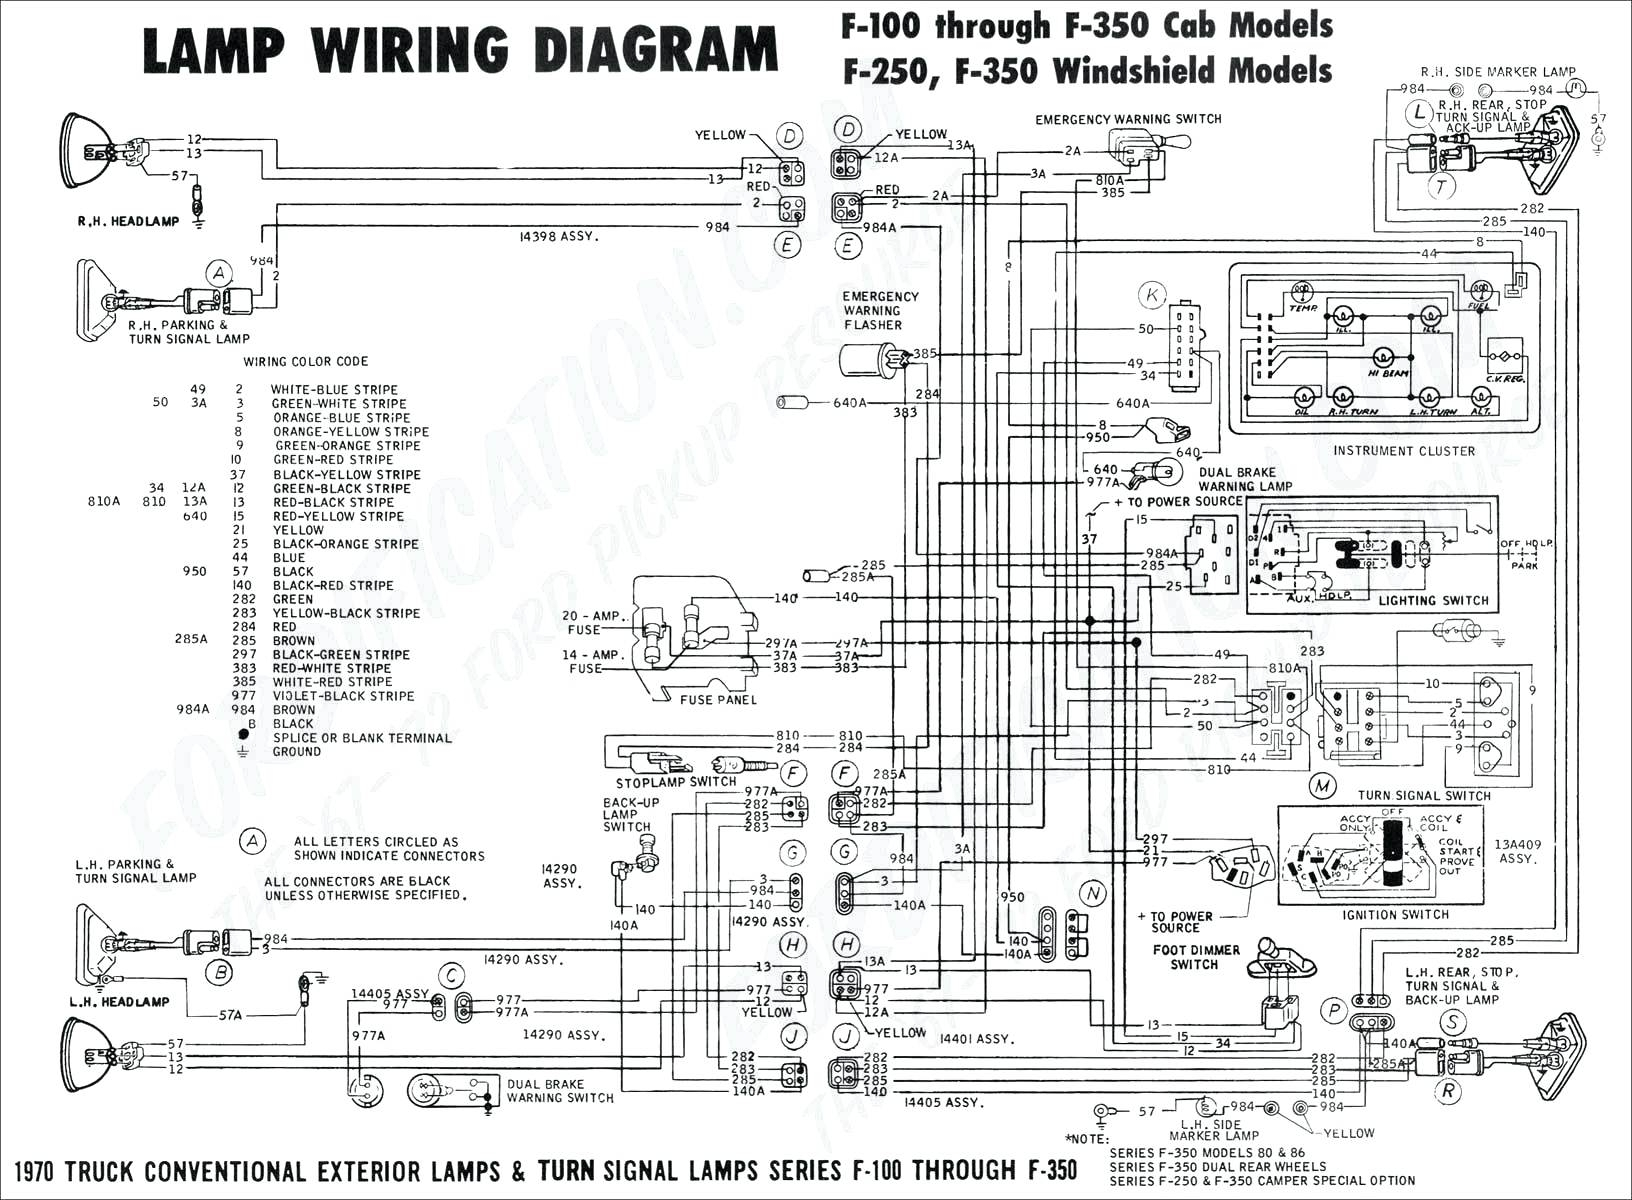 hes 9600 12 24d 630 wiring diagram Download-Wiring Diagram Pics Detail Name hes 9600 12 24d 630 13-c